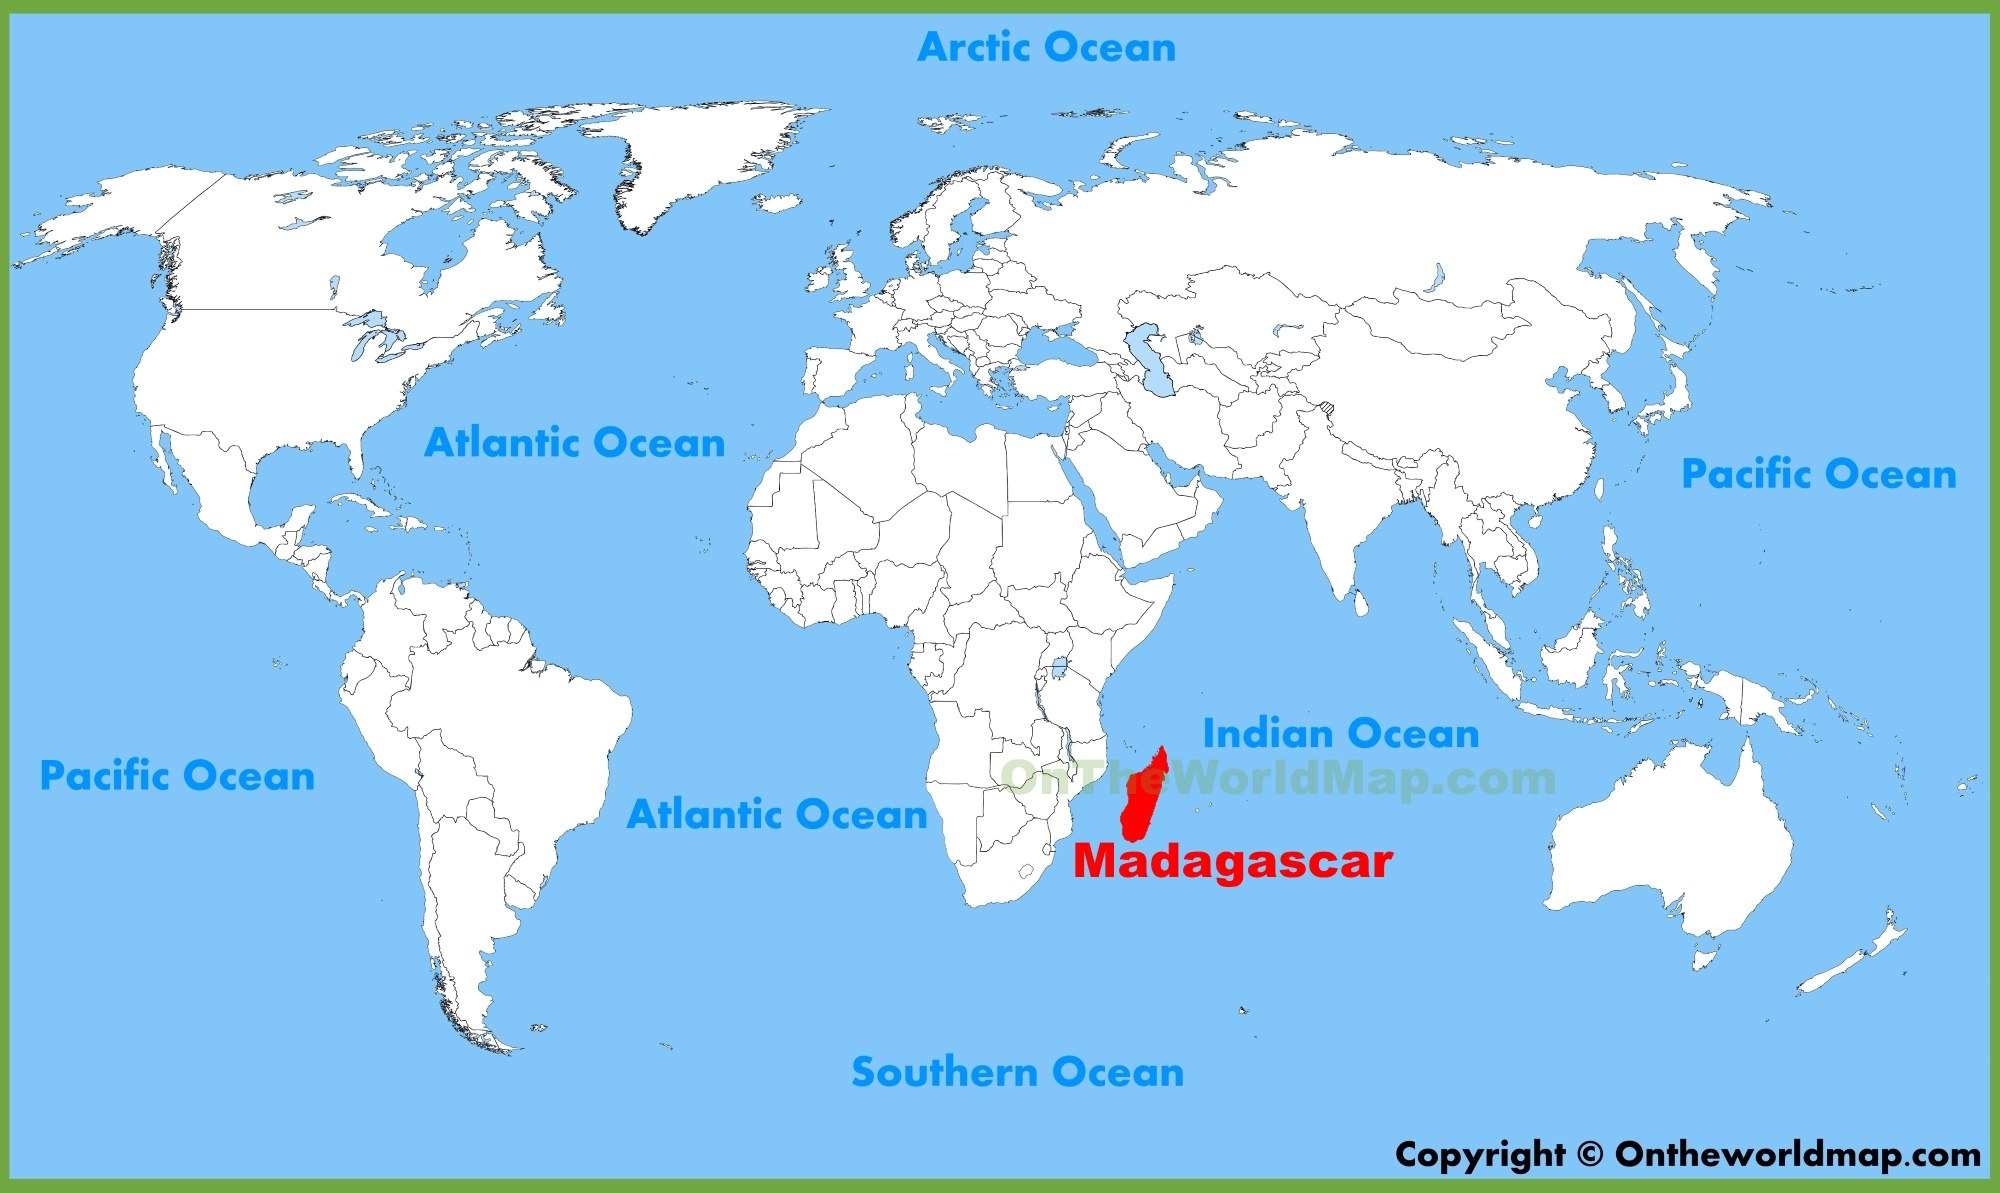 Madagascar location on the World Map